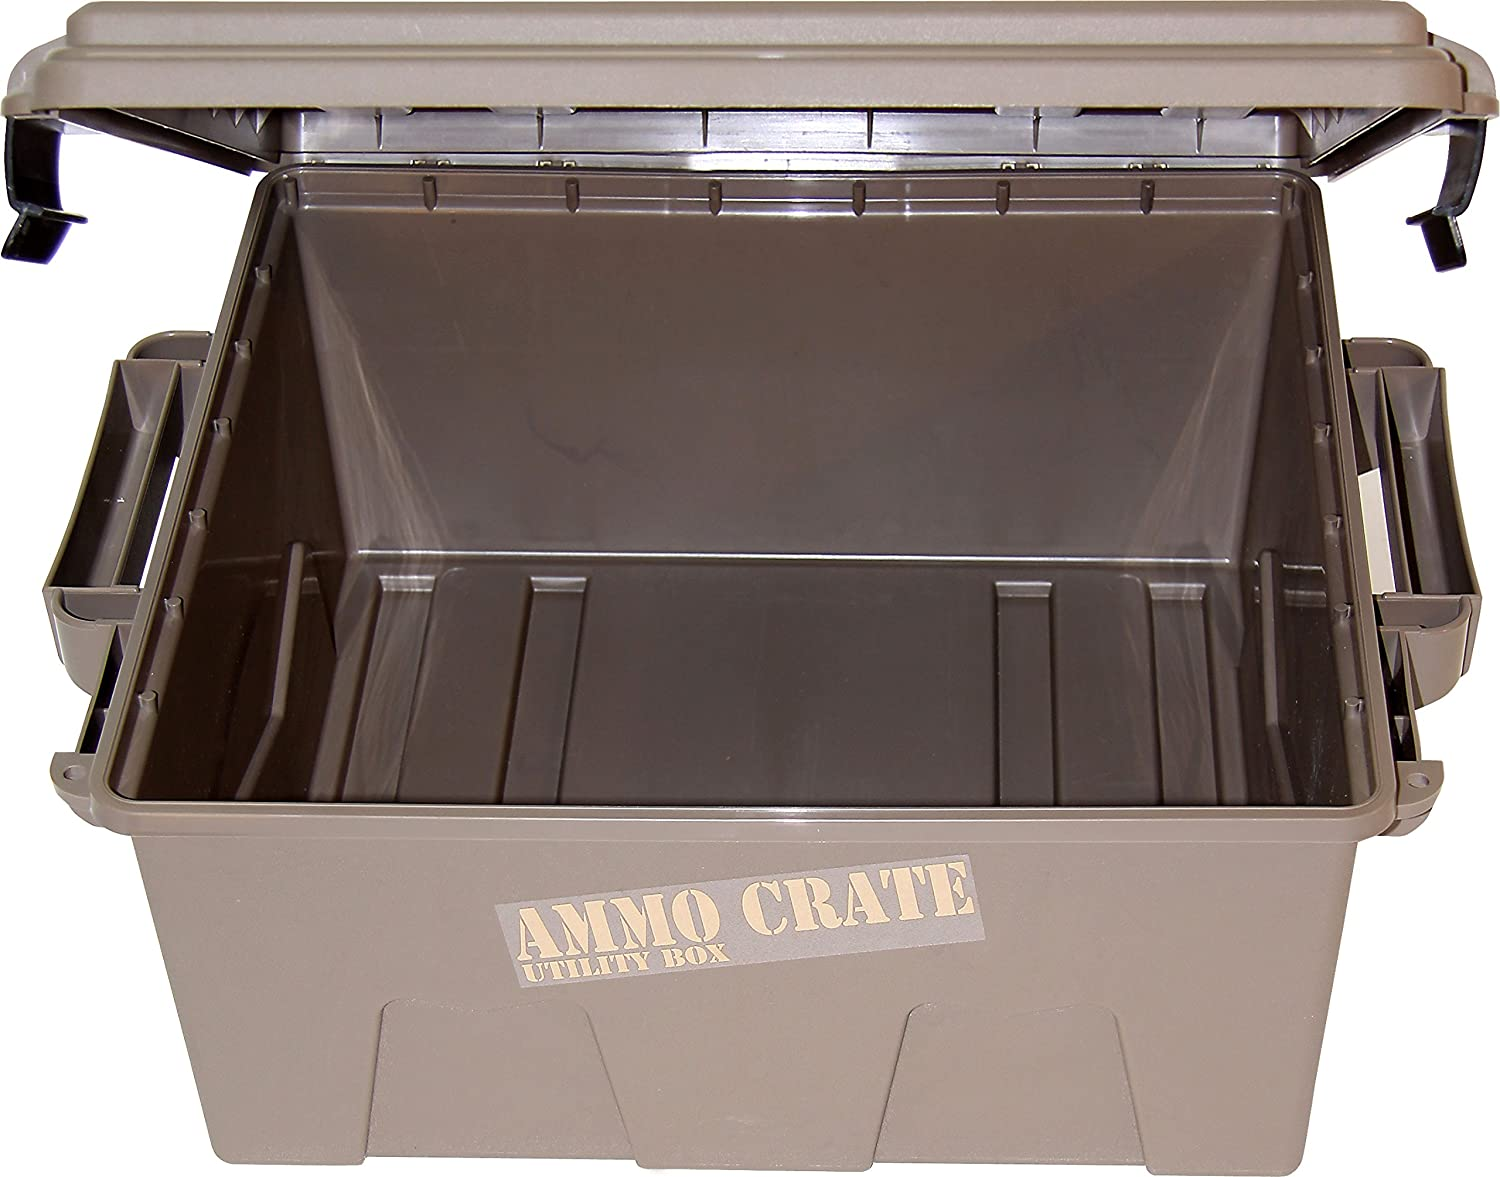 Amazon.com MTM ACR8-72 Ammo Crate Utility Box with 7.25  Deep Large Dark Earth Sports u0026 Outdoors & Amazon.com: MTM ACR8-72 Ammo Crate Utility Box with 7.25